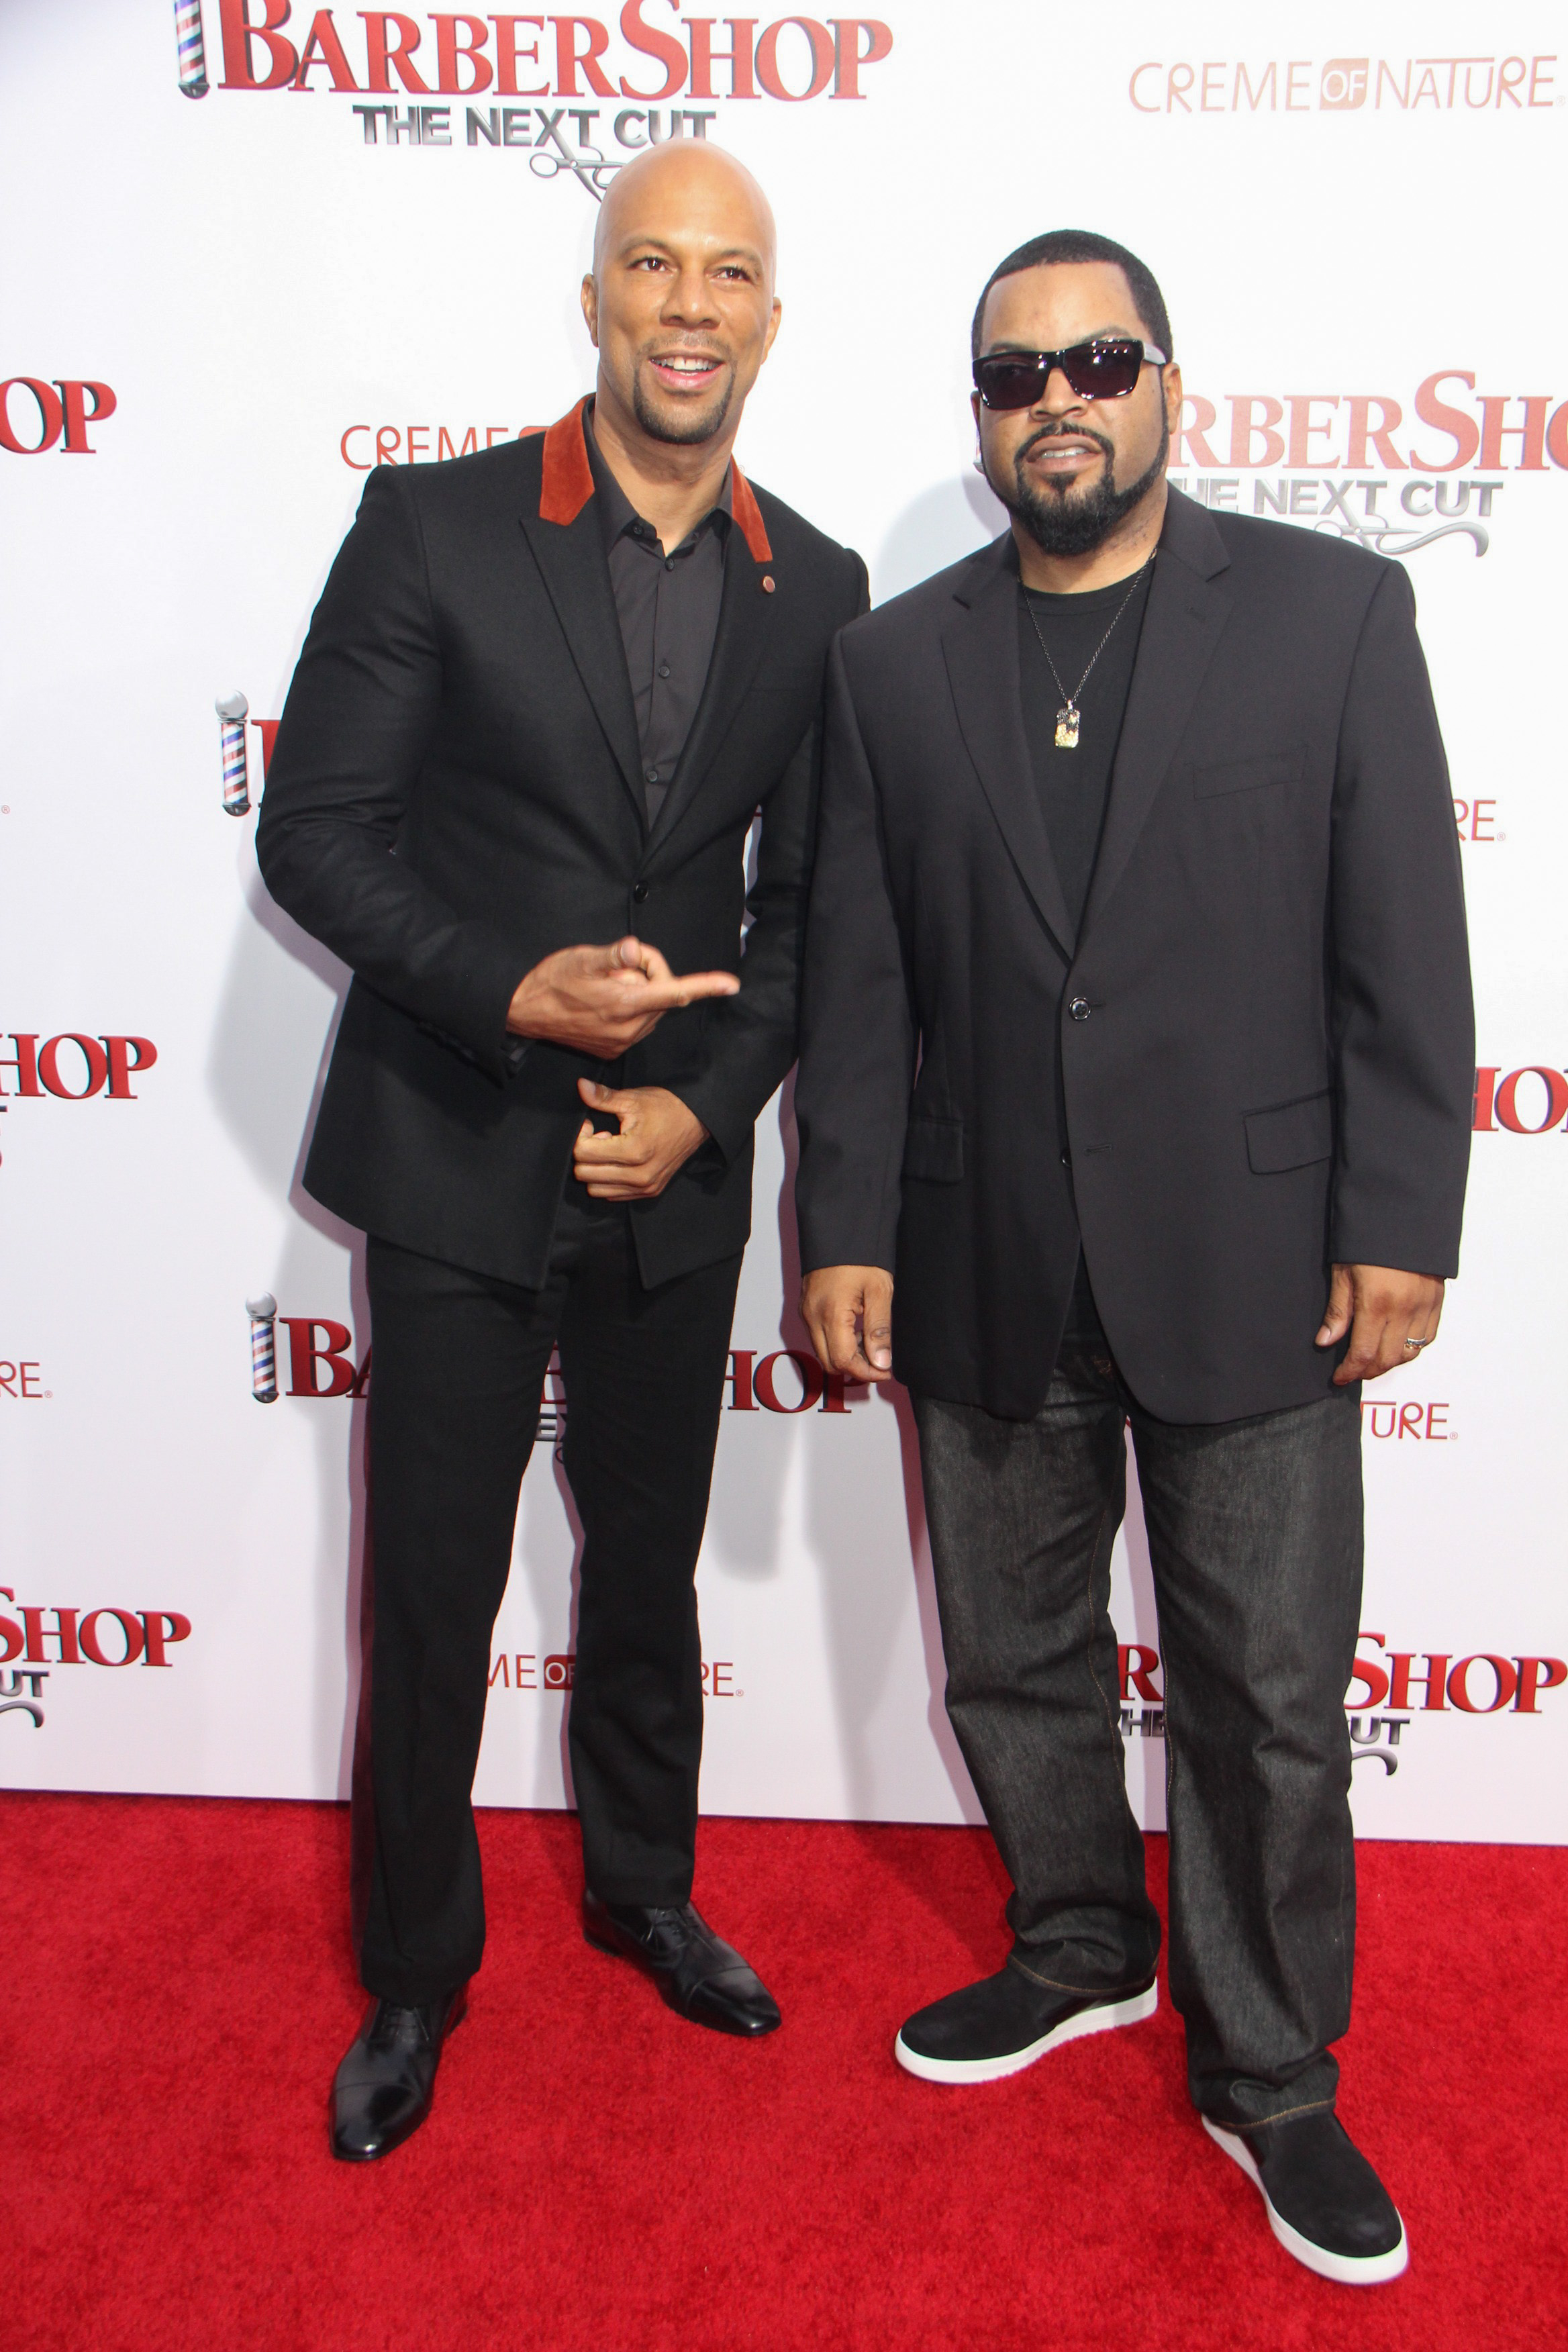 "04/06/2016 - Common, Ice Cube - ""Barbershop: The Next Cut"" Los Angeles Premiere - Arrivals - TCL Chinese Theatre, 6925 Hollywood Boulevard - Hollywood, CA, USA - Keywords: Vertical, Portrait, Photography, Movie Premiere, Film Industry, Red Carpet Event, Arts Culture and Entertainment, Arrival, Attending, Person, People, Celebrity, Celebrities, Topix, Bestof, Comedy, Los Angeles, California Orientation: Portrait Face Count: 1 - False - Photo Credit: Izumi Hasegawa / PRPhotos.com - Contact (1-866-551-7827) - Portrait Face Count: 1"